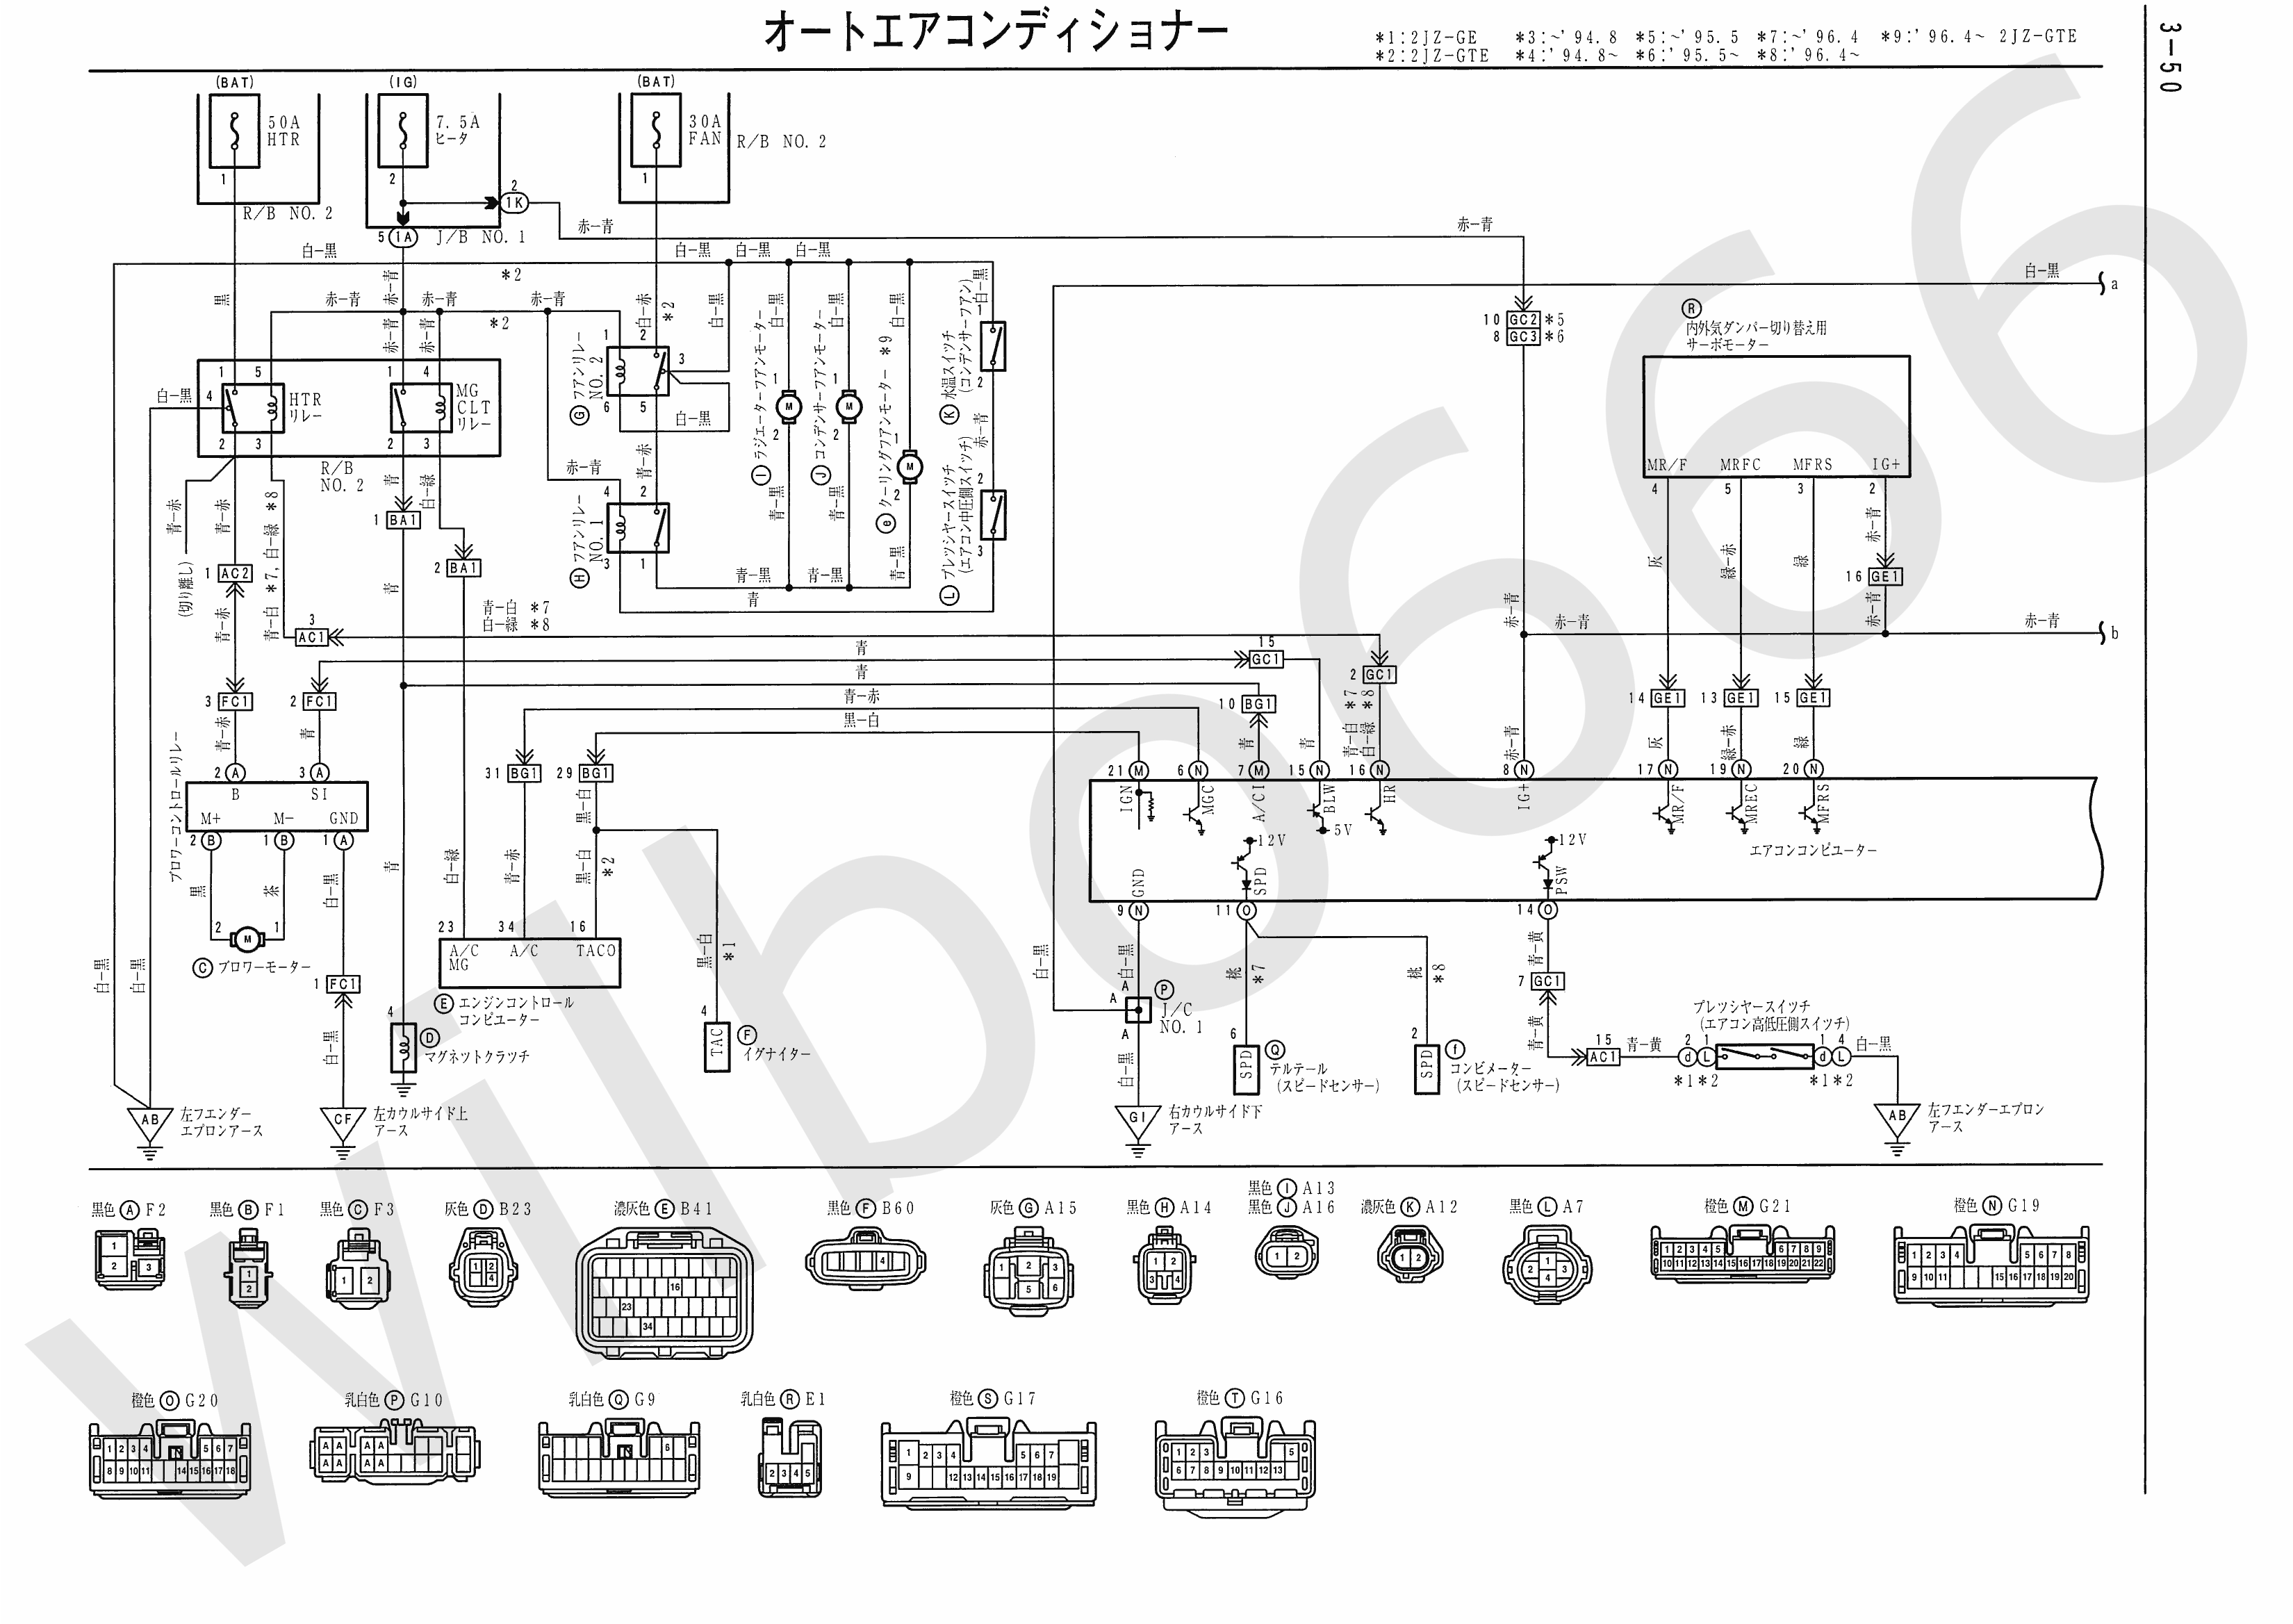 Dact wiring diagram wiring diagram 1993 mazda navajo pictures of Fire Alarm Dact Acm Wiring Diagram bosch 2071 manual on dact wiring diagram